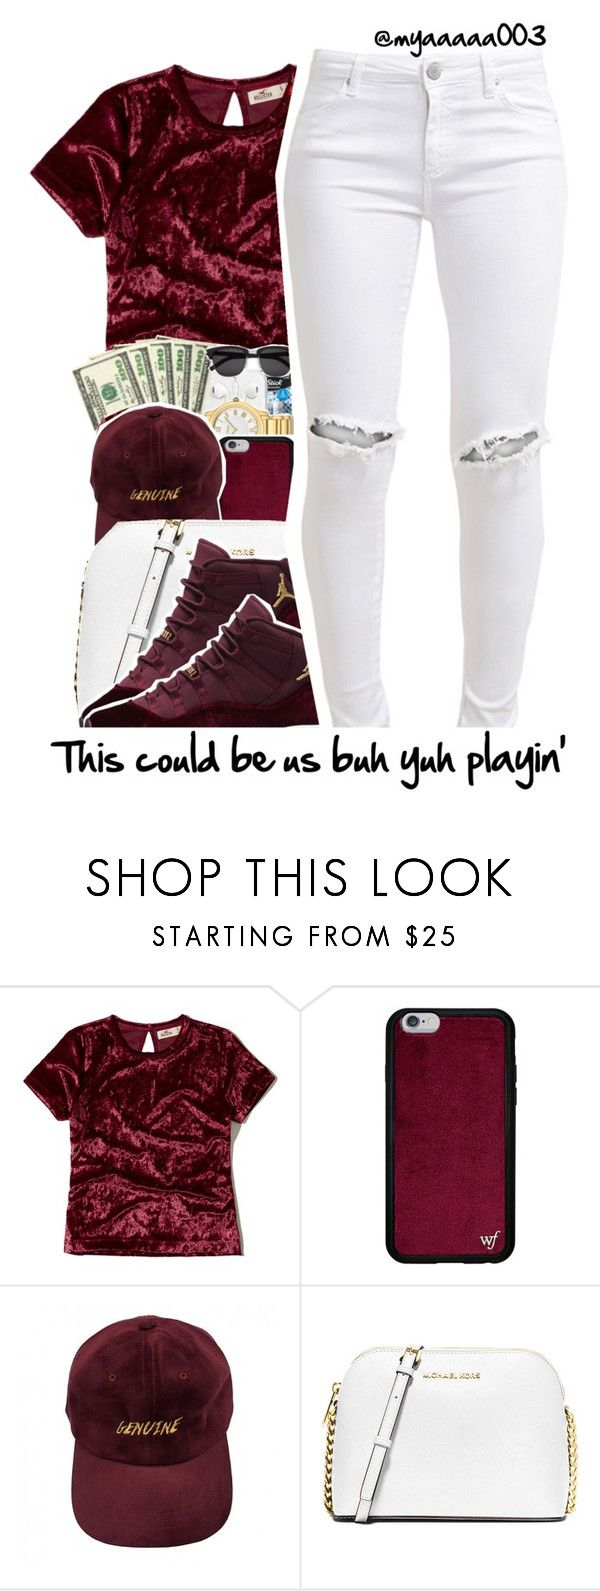 """This Cute"" by myaaaaa003 ❤ liked on Polyvore featuring Hollister Co., MICHAEL Michael Kors and FiveUnits"